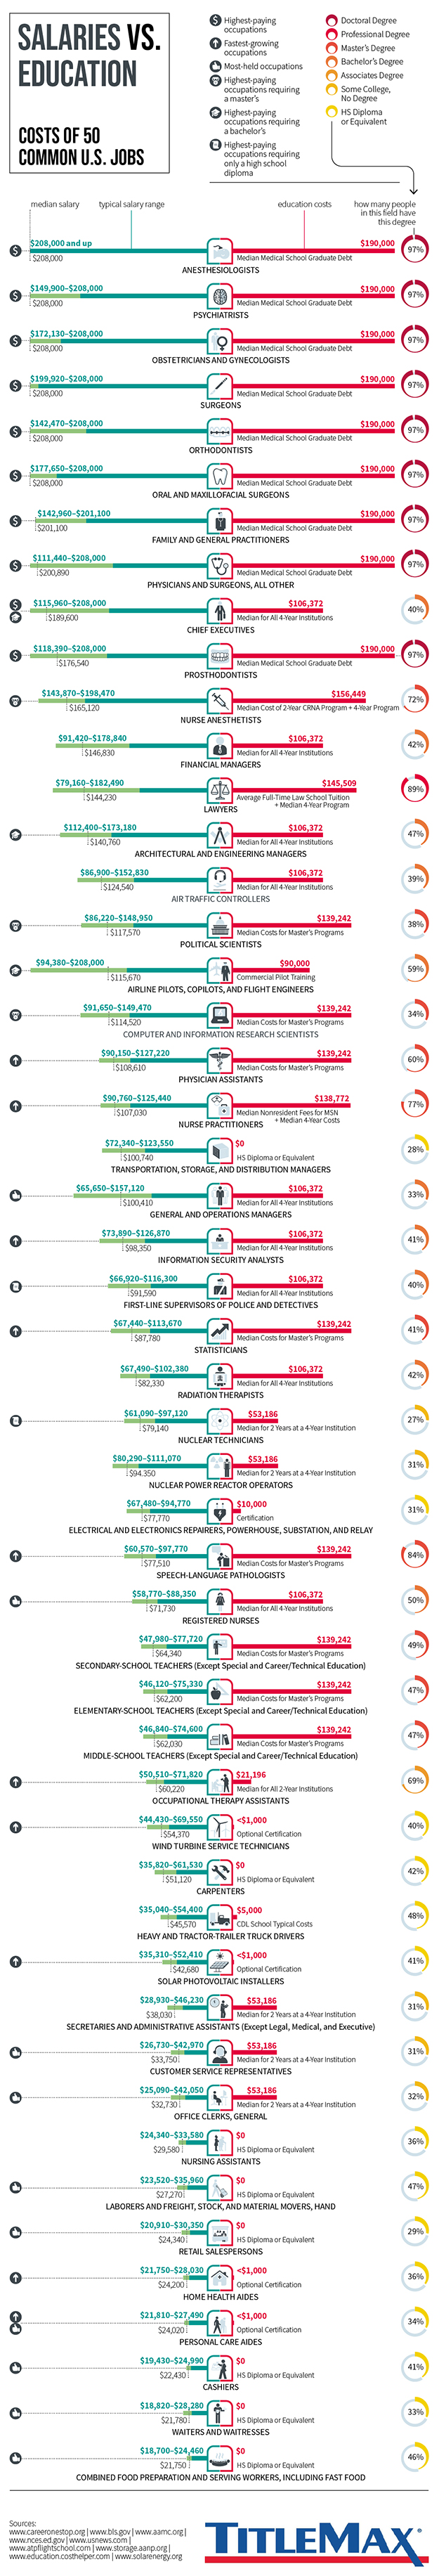 Infographic for Salaries vs. Education: Costs of 50 Common U.S. Jobs